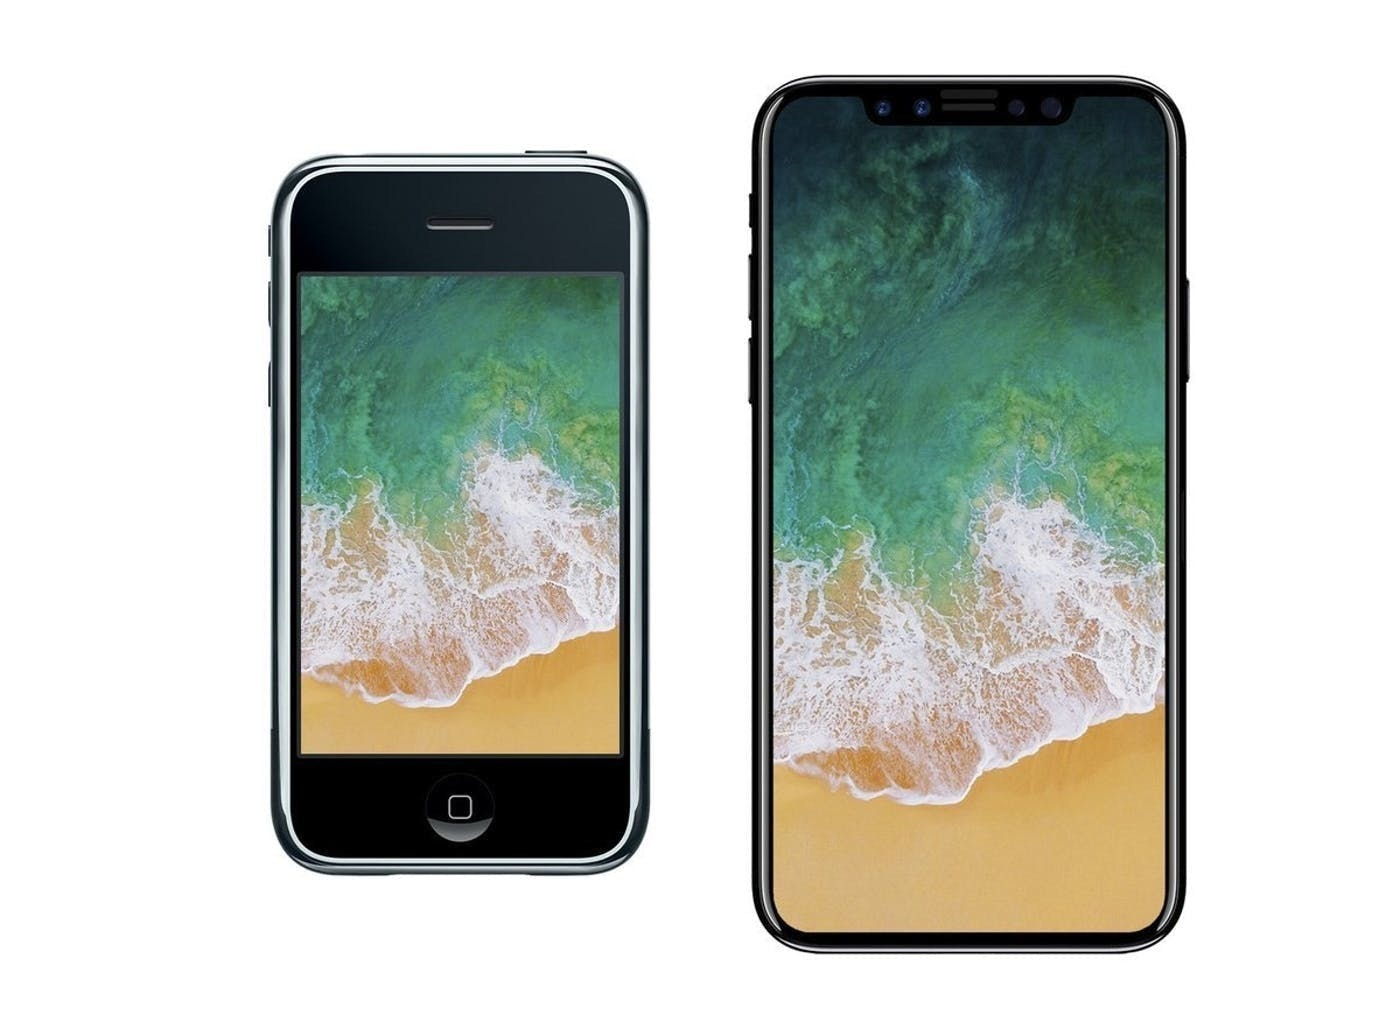 The original iPhone compared to the iPhone 8.